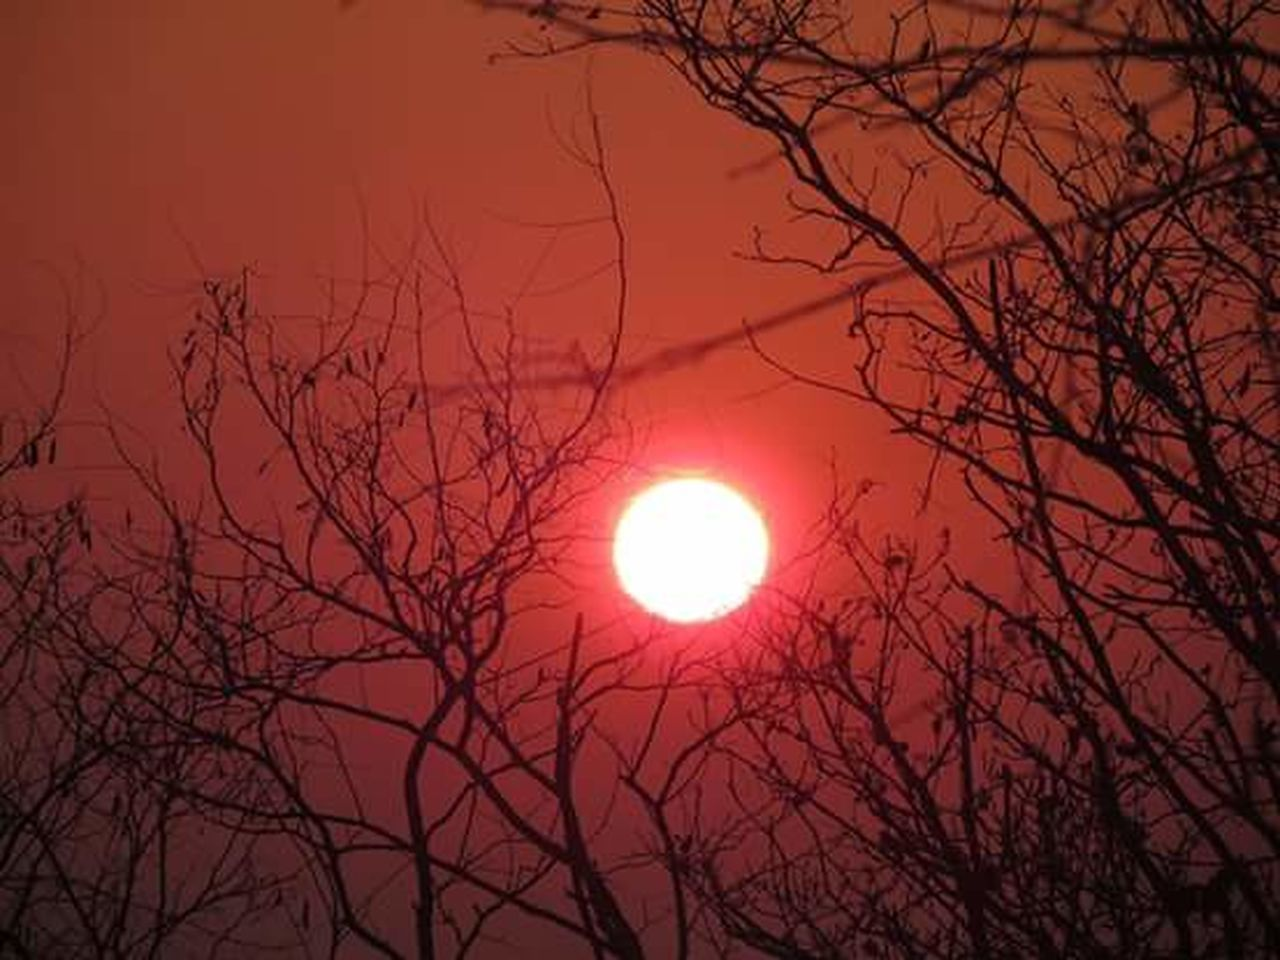 bare tree, moon, sun, branch, low angle view, beauty in nature, outdoors, sky, nature, scenics, tree, red, no people, astronomy